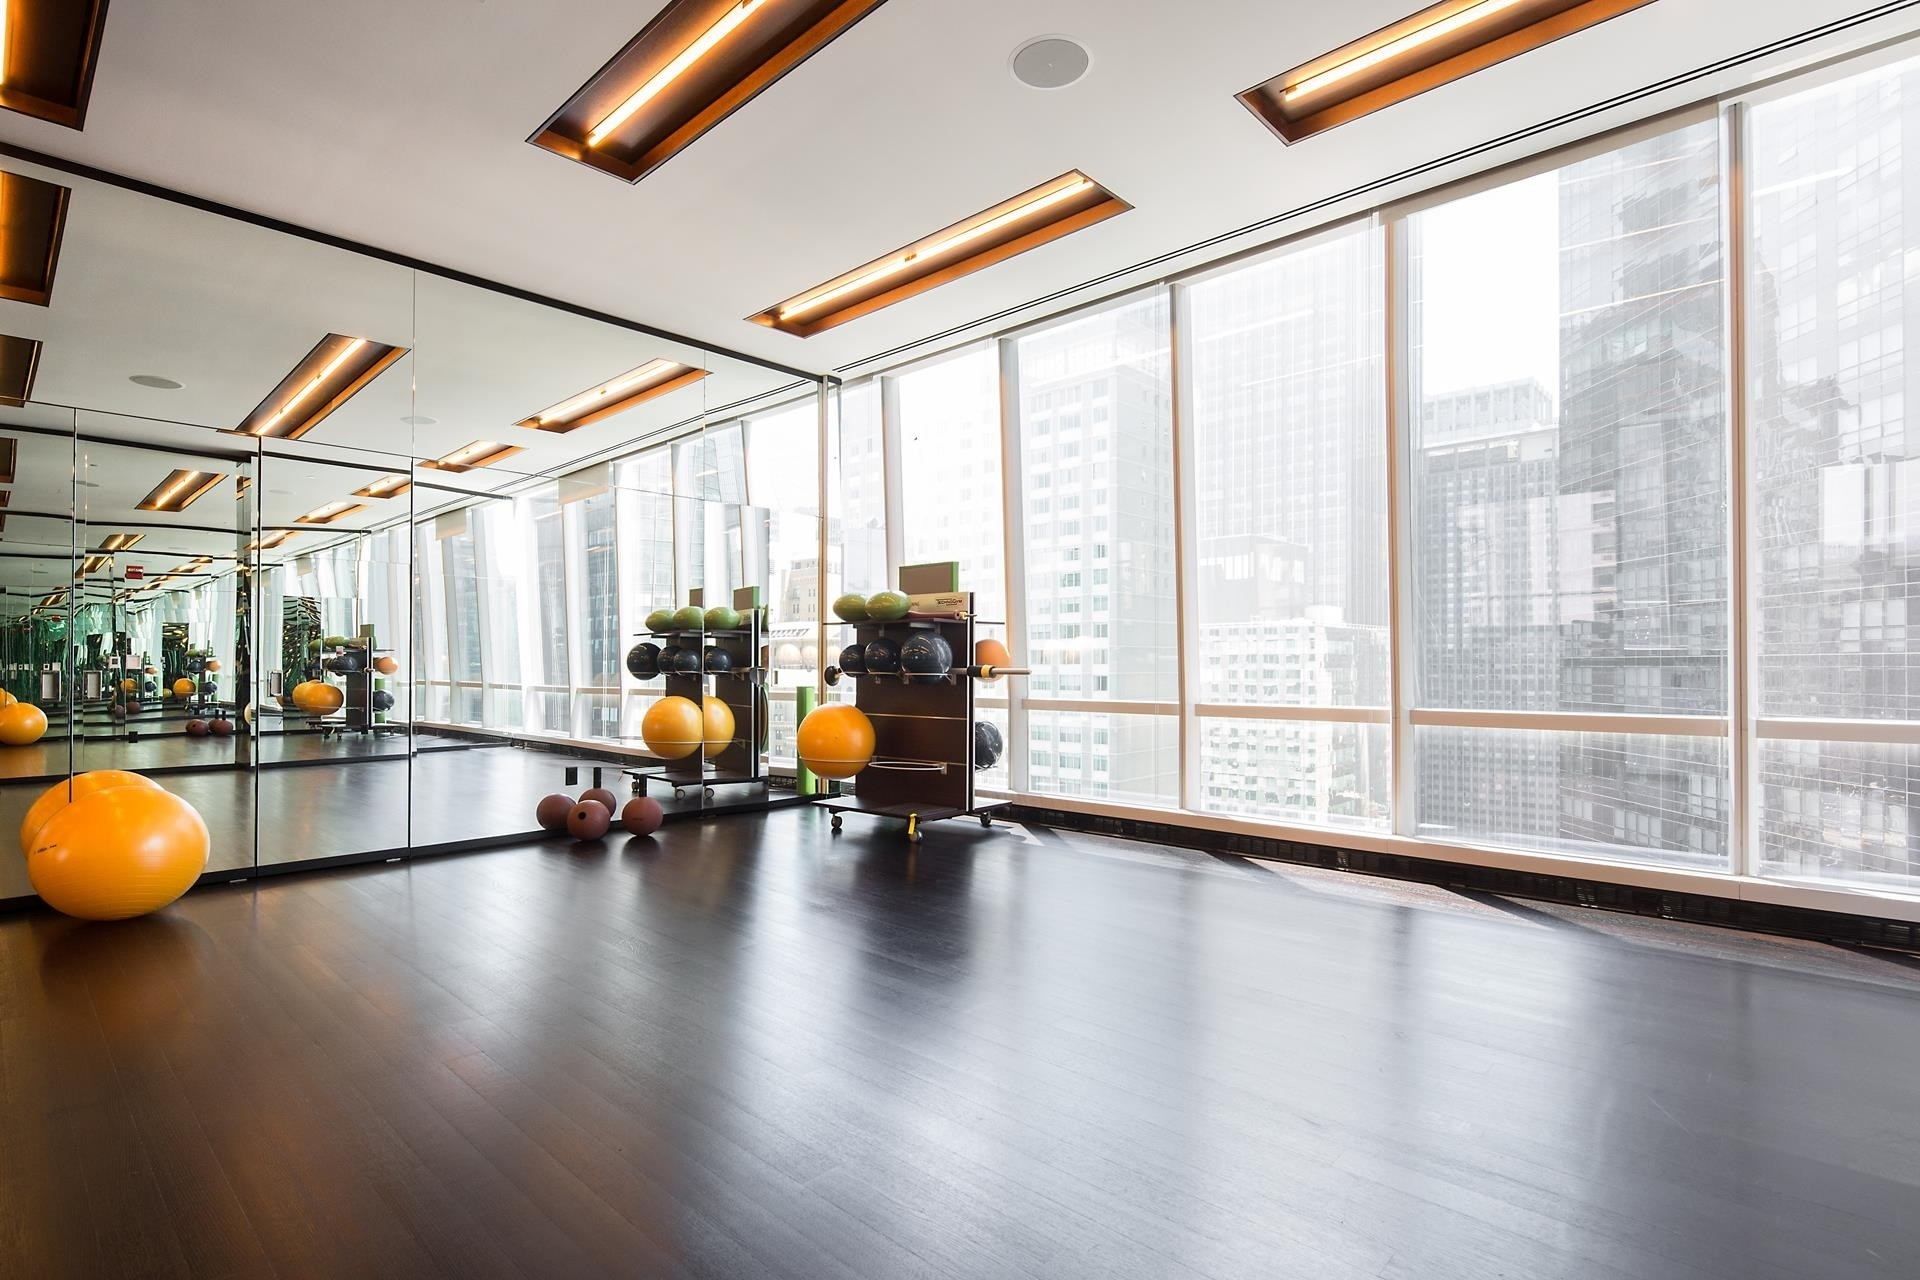 12. Condominiums for Sale at One57, 157 W 57TH ST , 41A Midtown West, New York, NY 10019